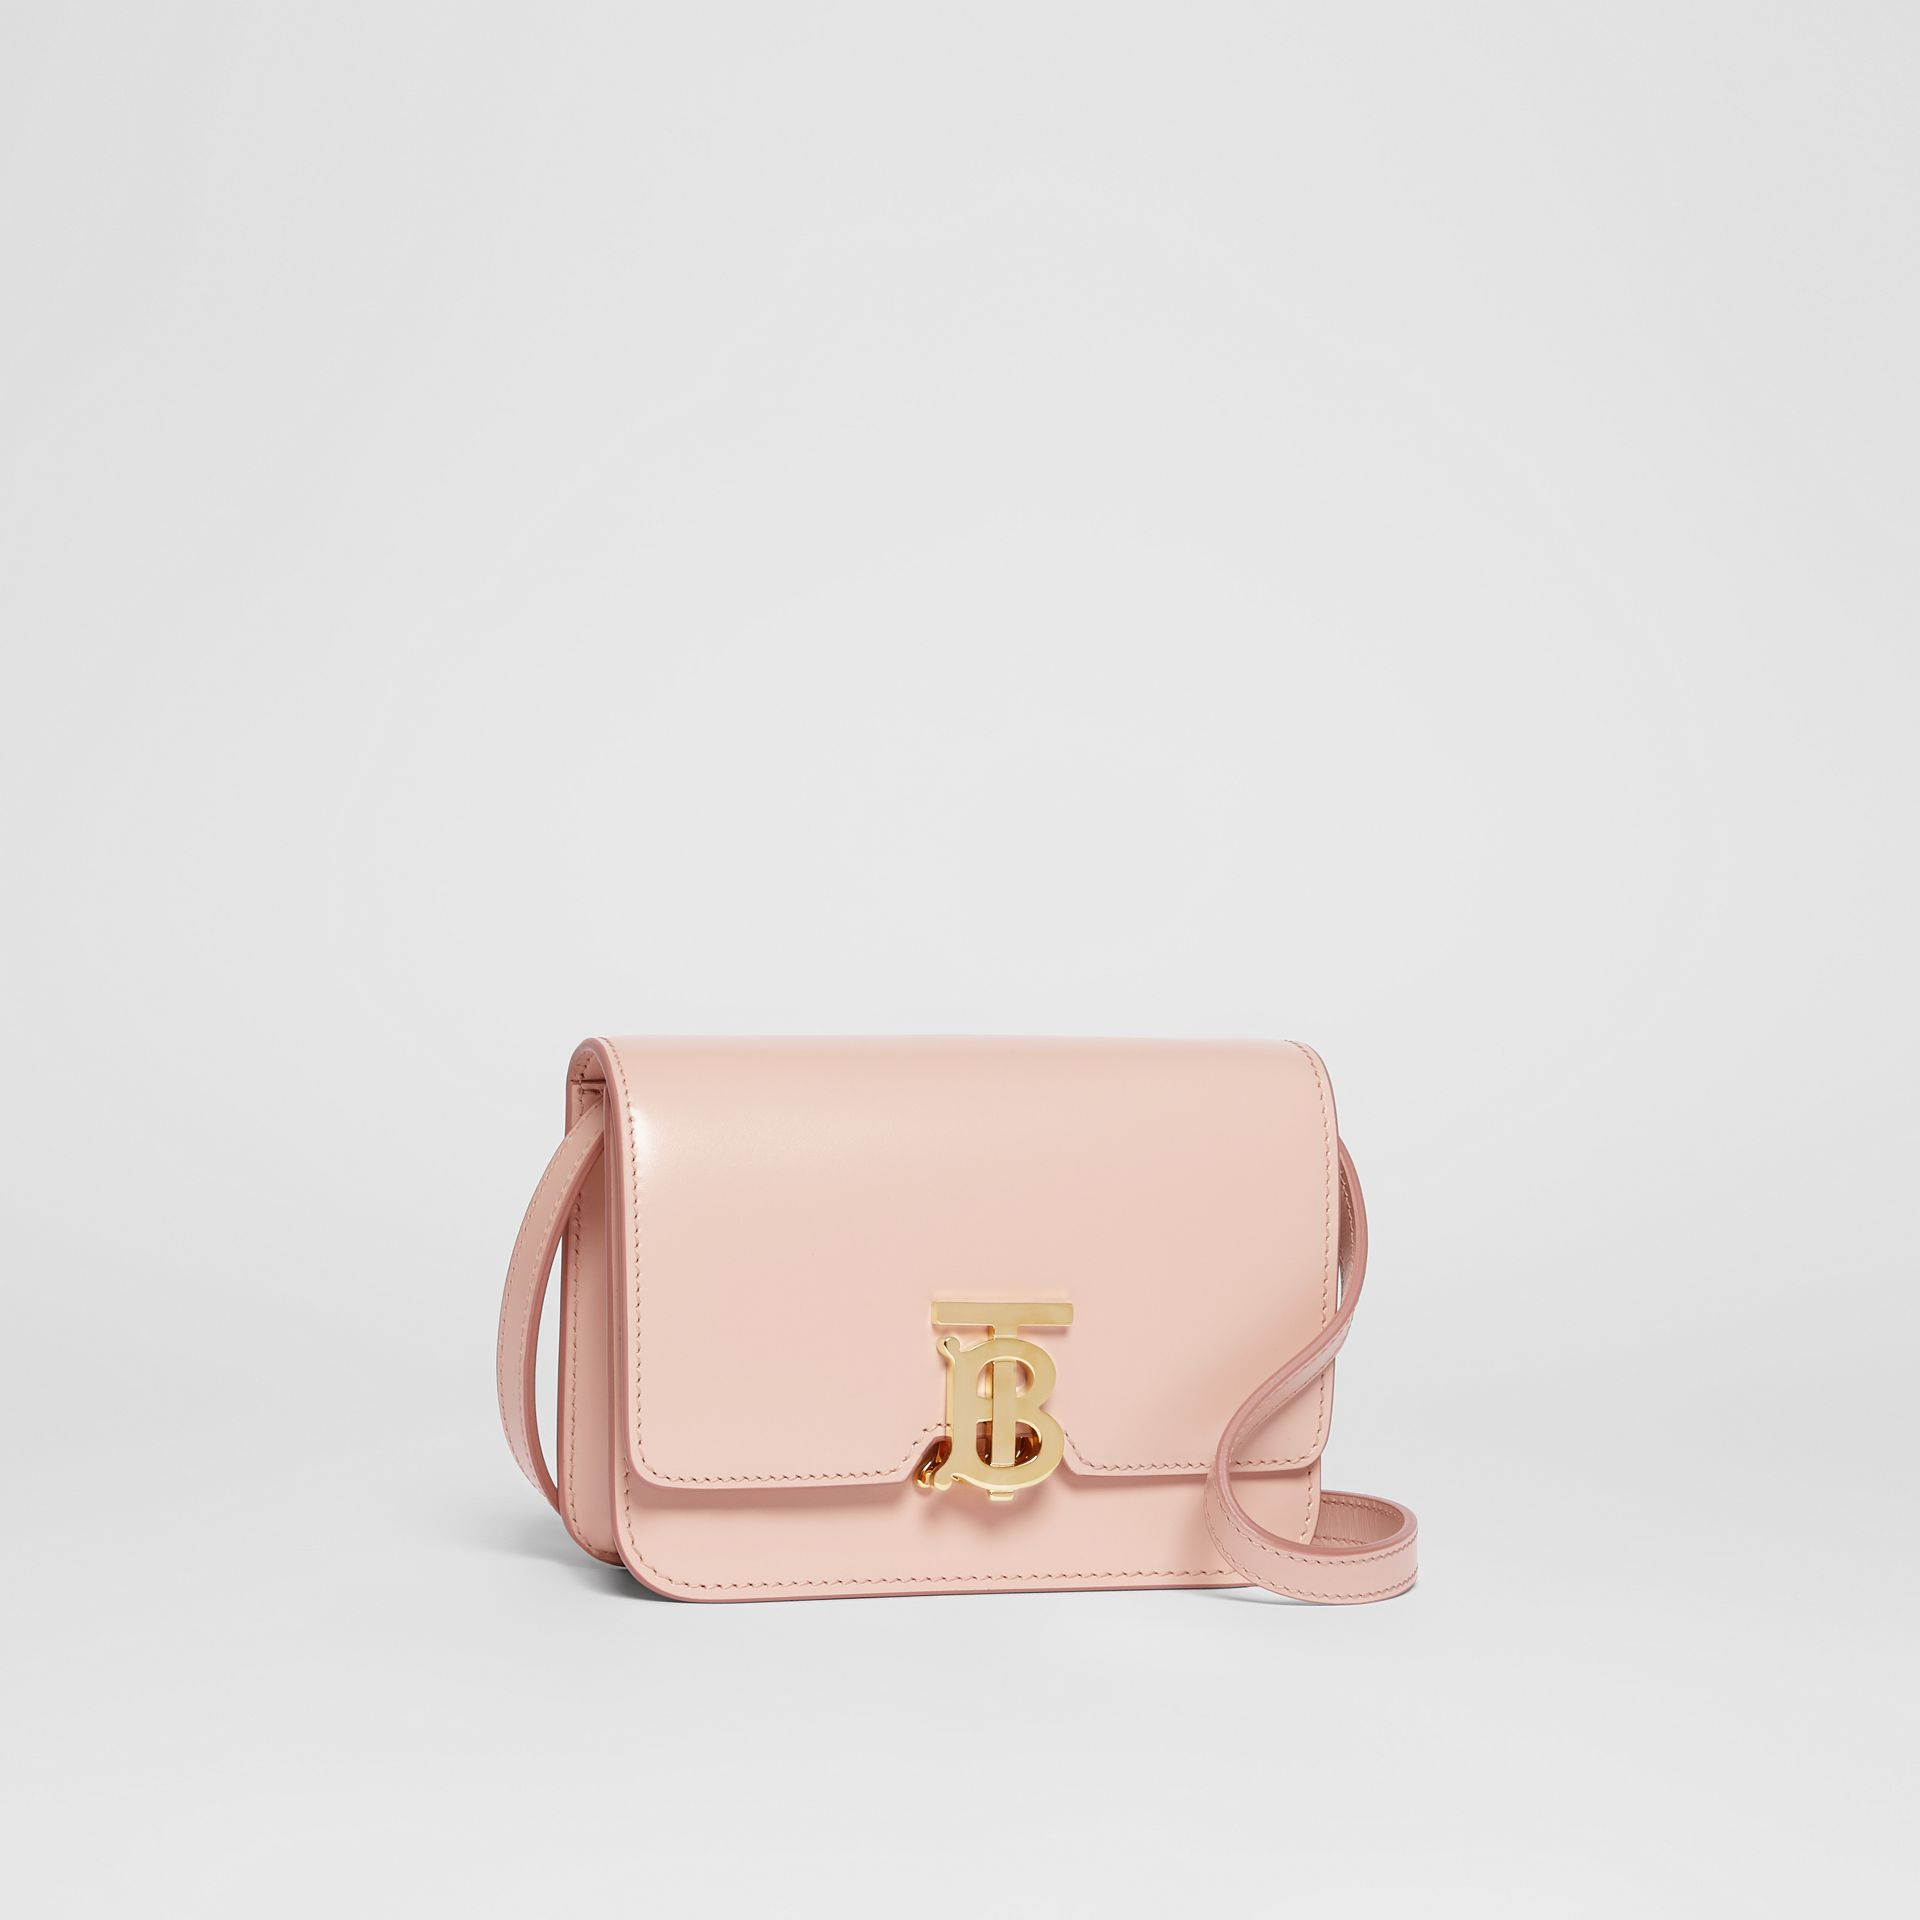 Mini Leather TB Bag in Rose Beige - Women | Burberry - gallery image 6